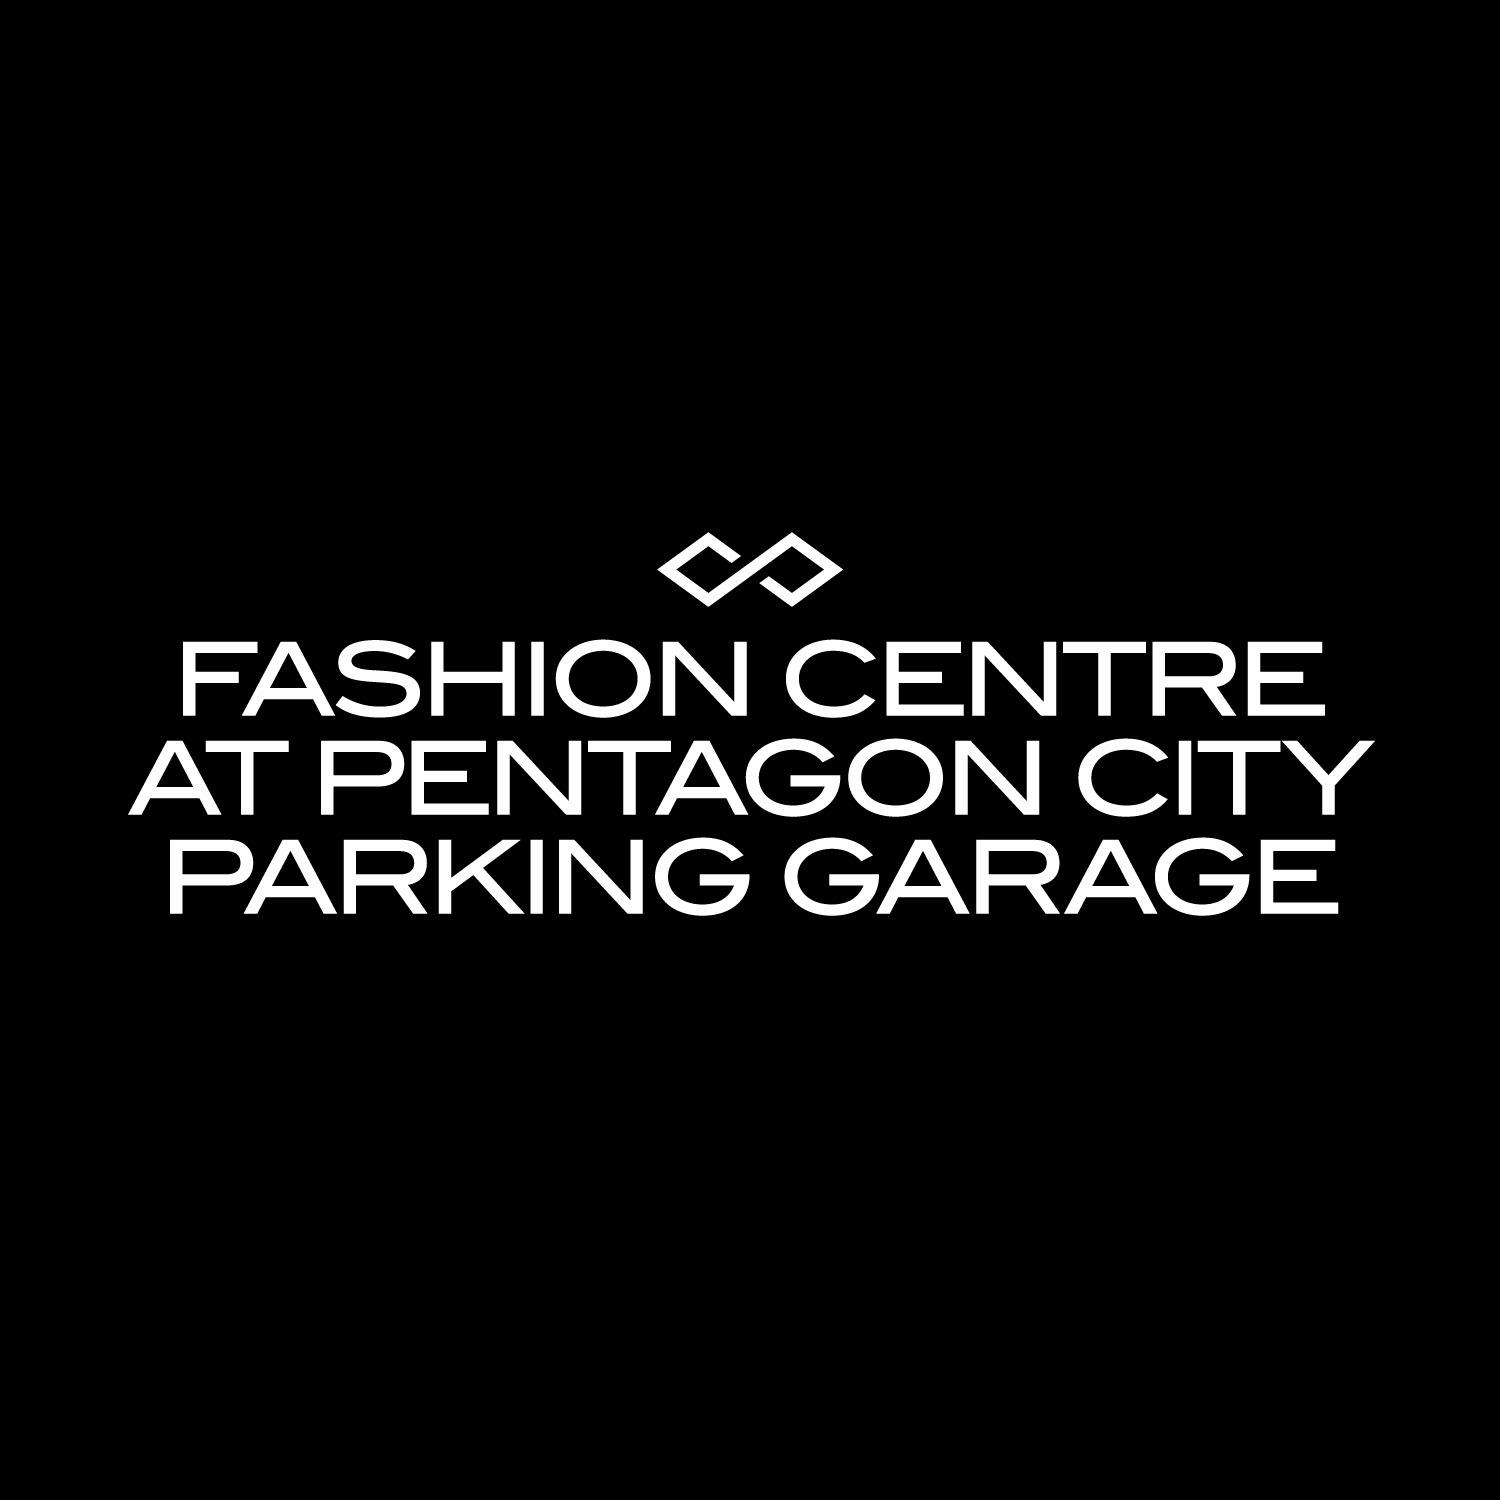 Fashion Centre at Pentagon City Parking Garage